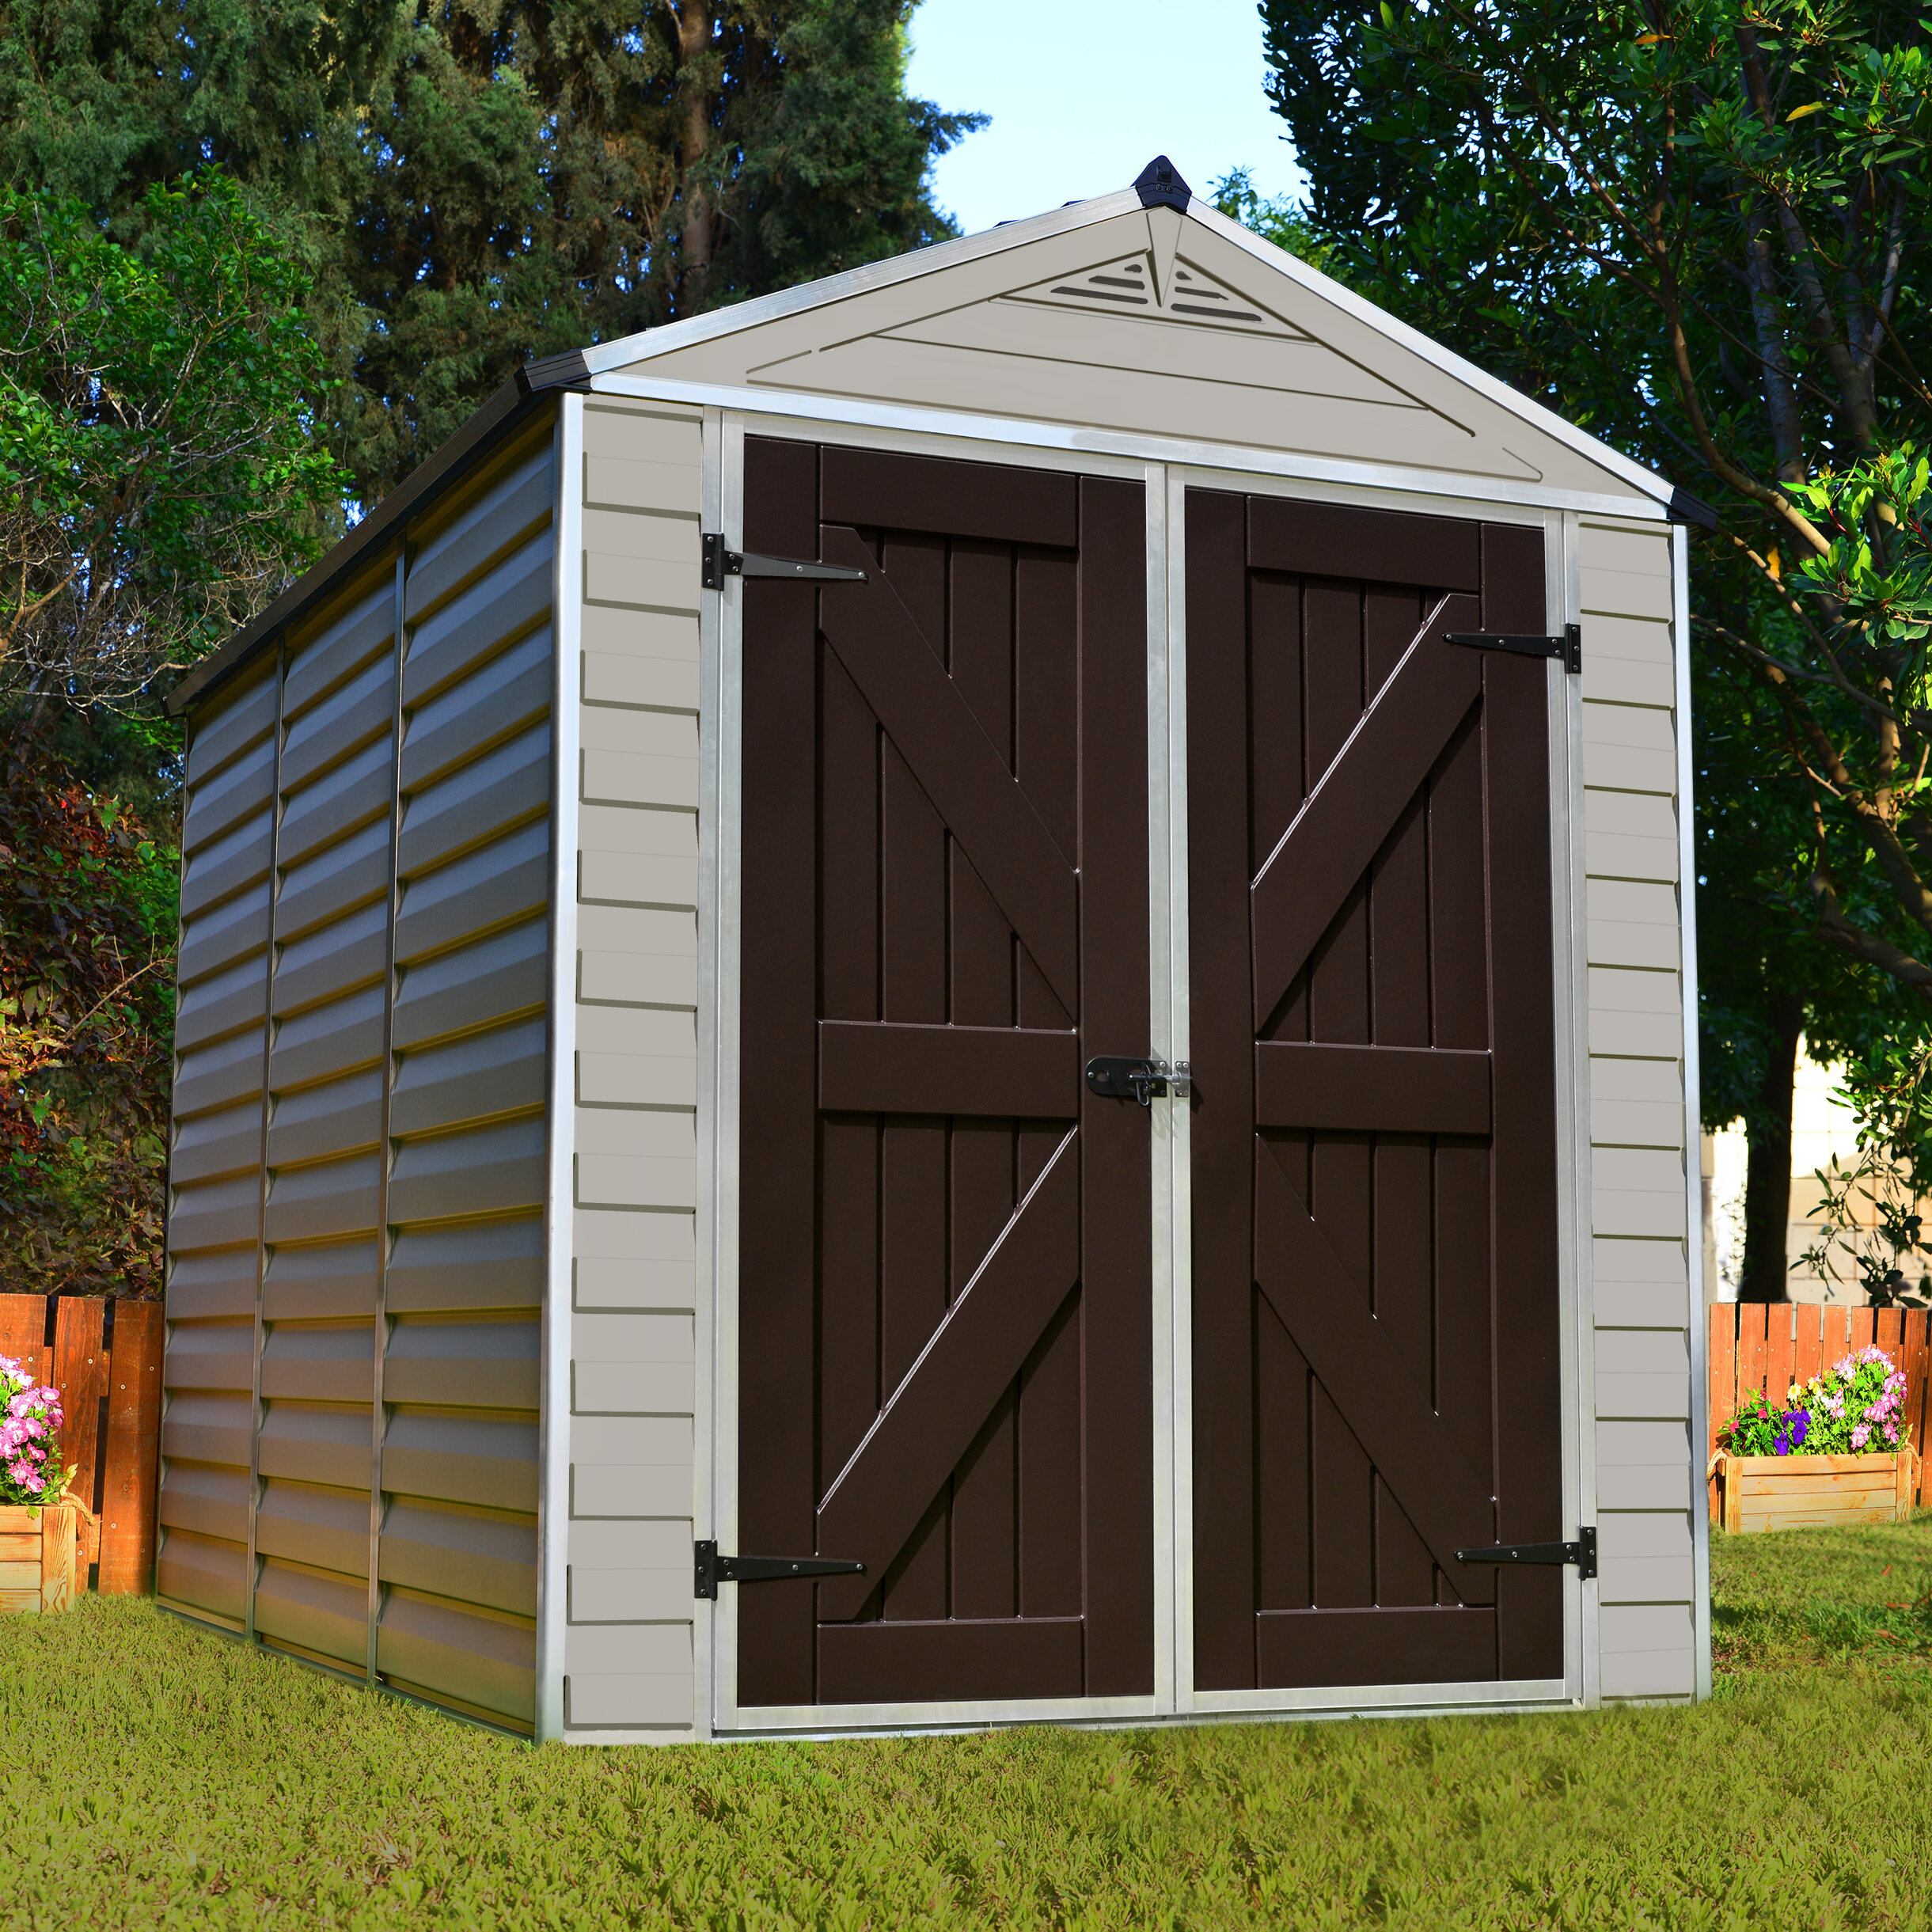 less sheds building kits metal for full of size plans shed carports cheap roof carport storage